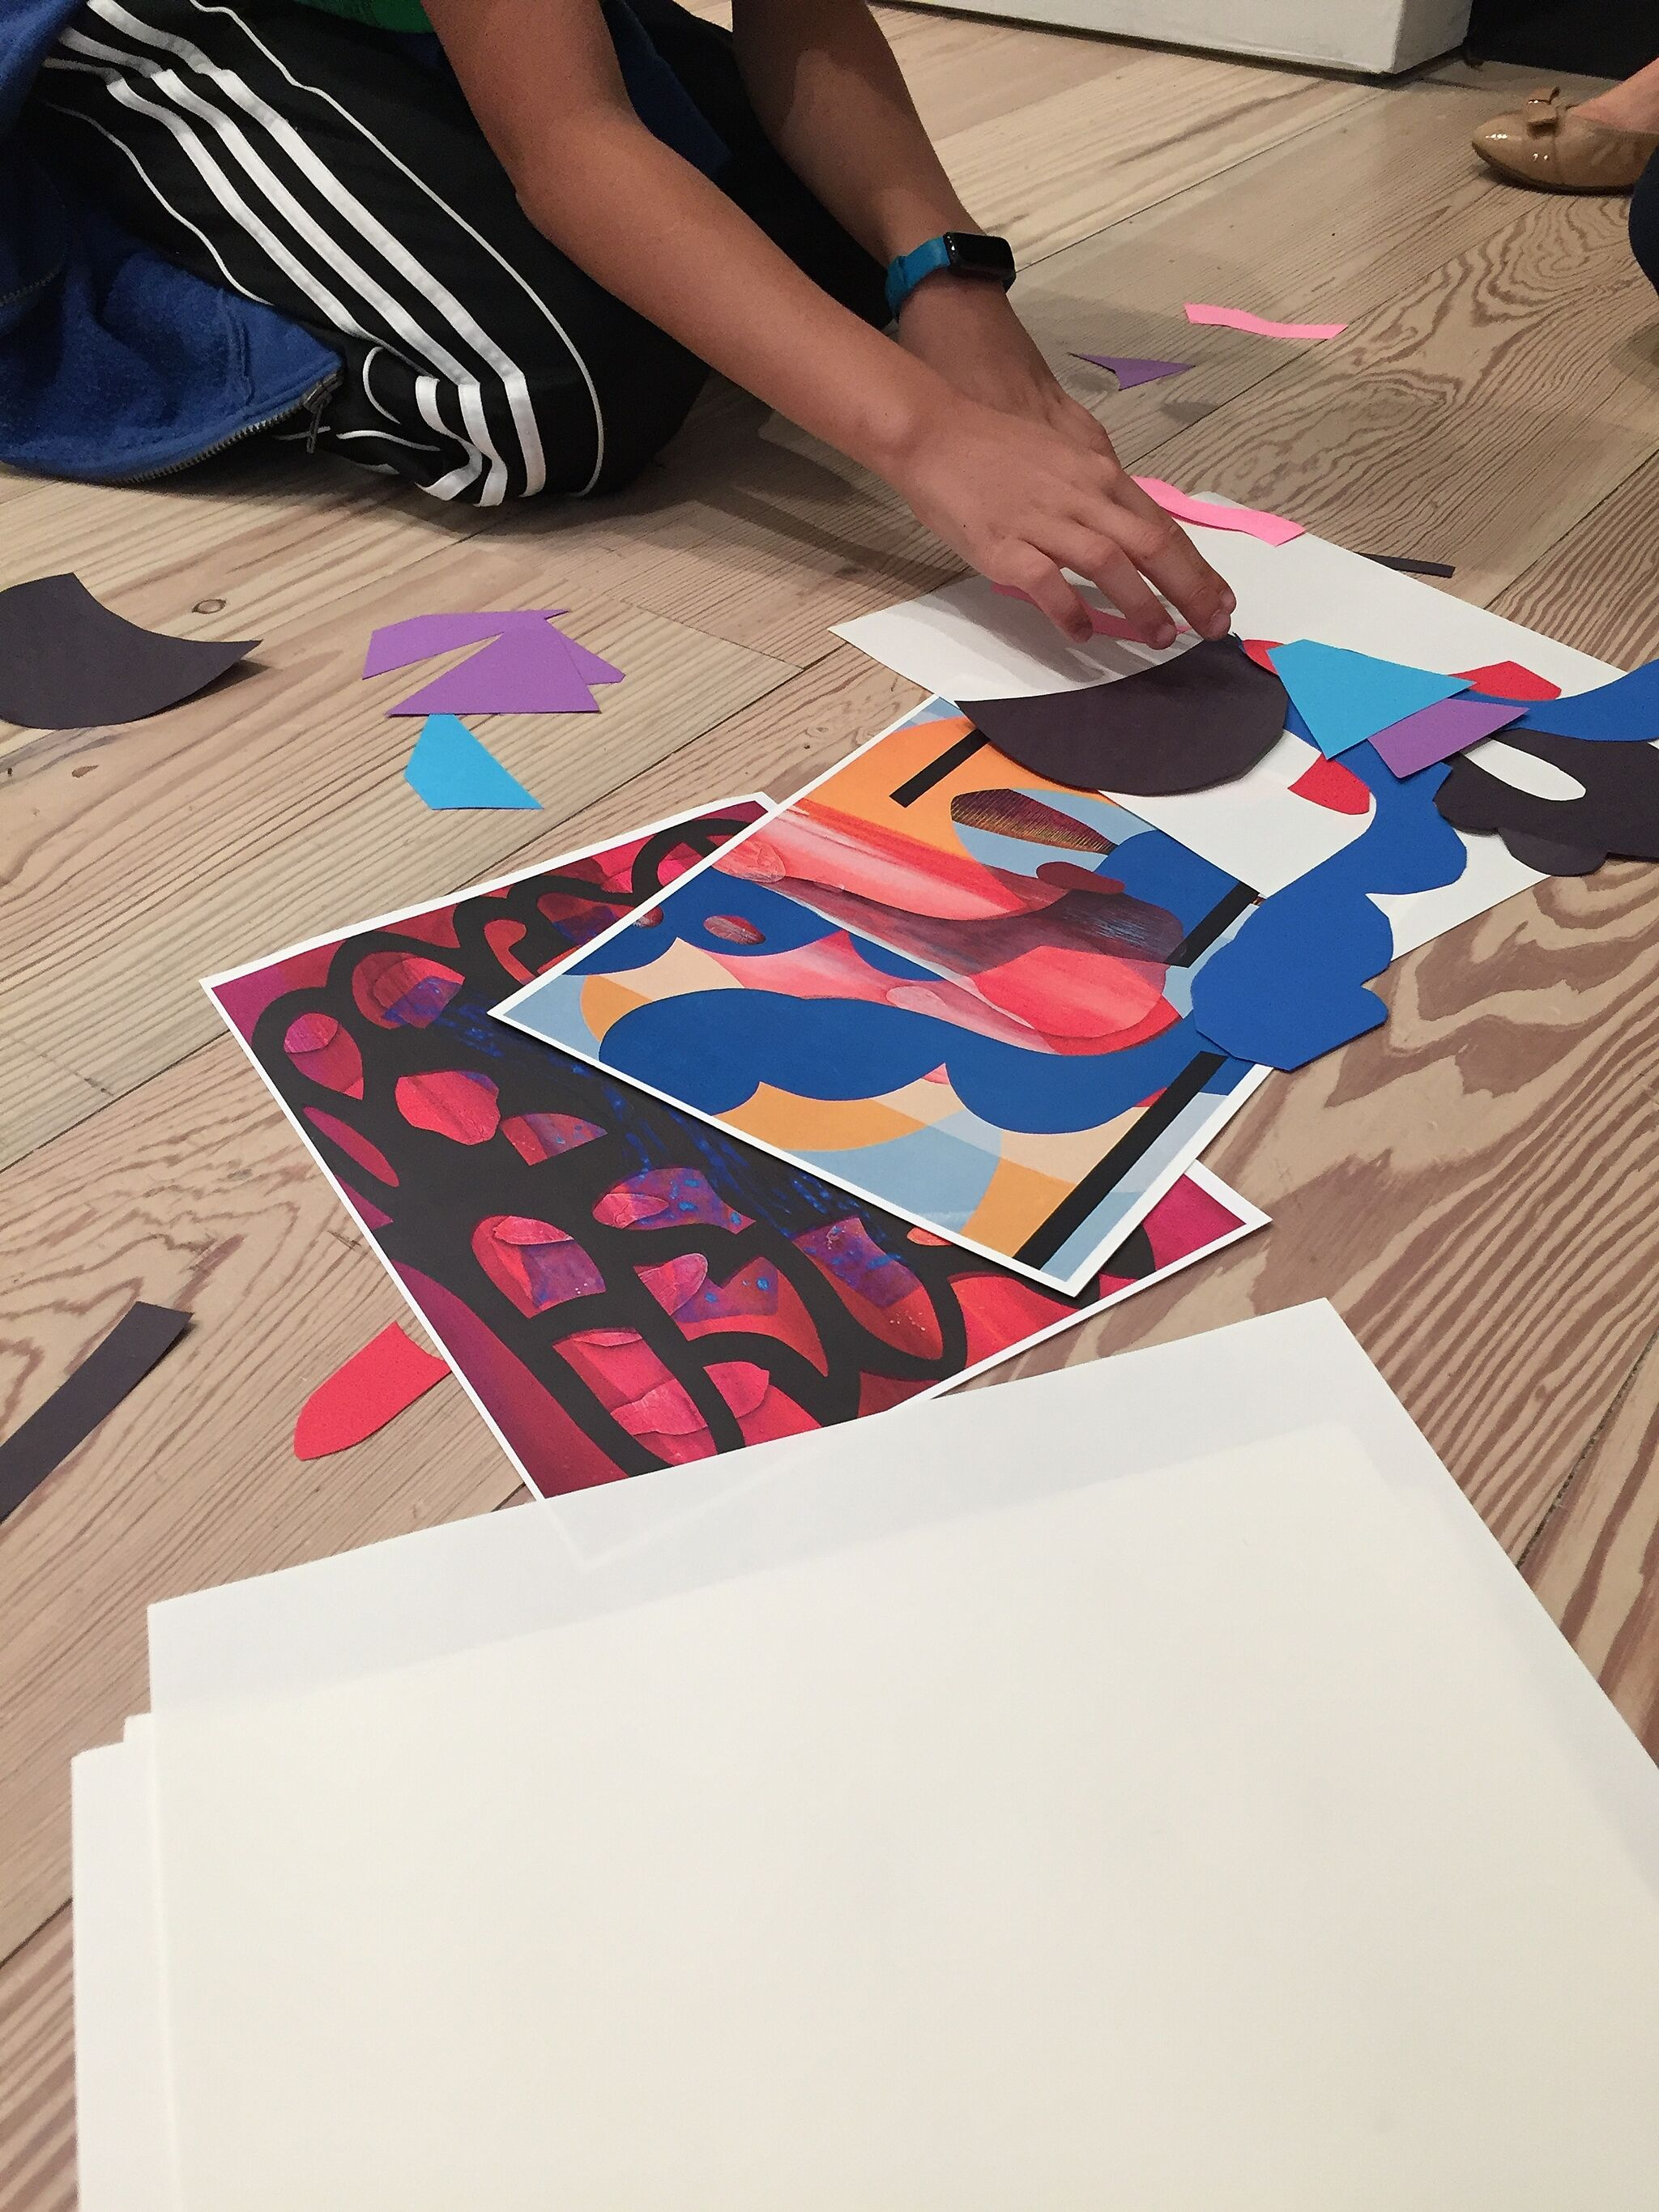 A person sits on the floor making a collage.